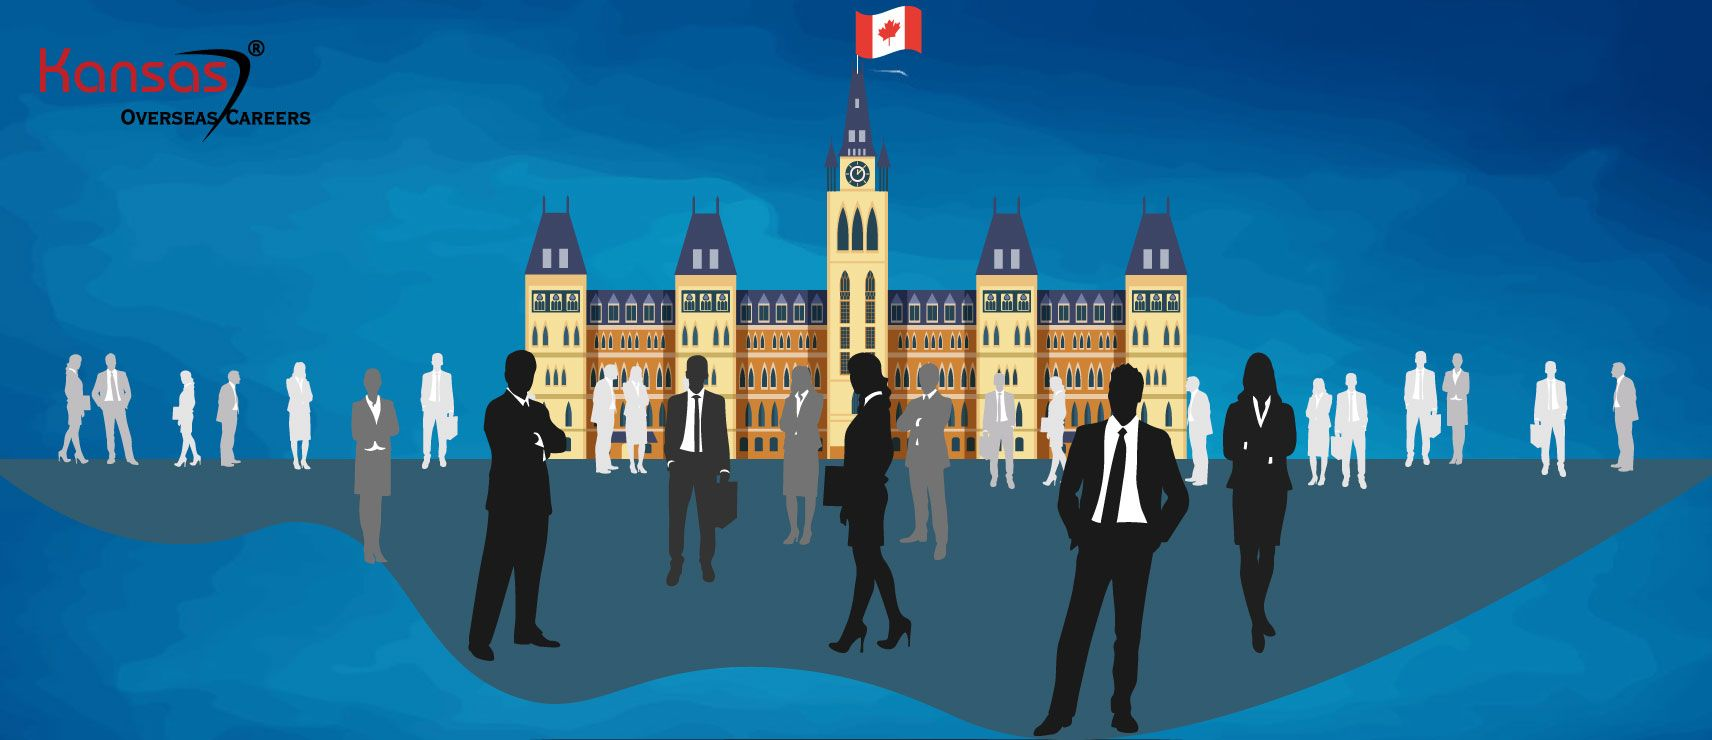 Master's (MS) in Canada: Top Universities, Courses, Tuition Fees & Scholarships